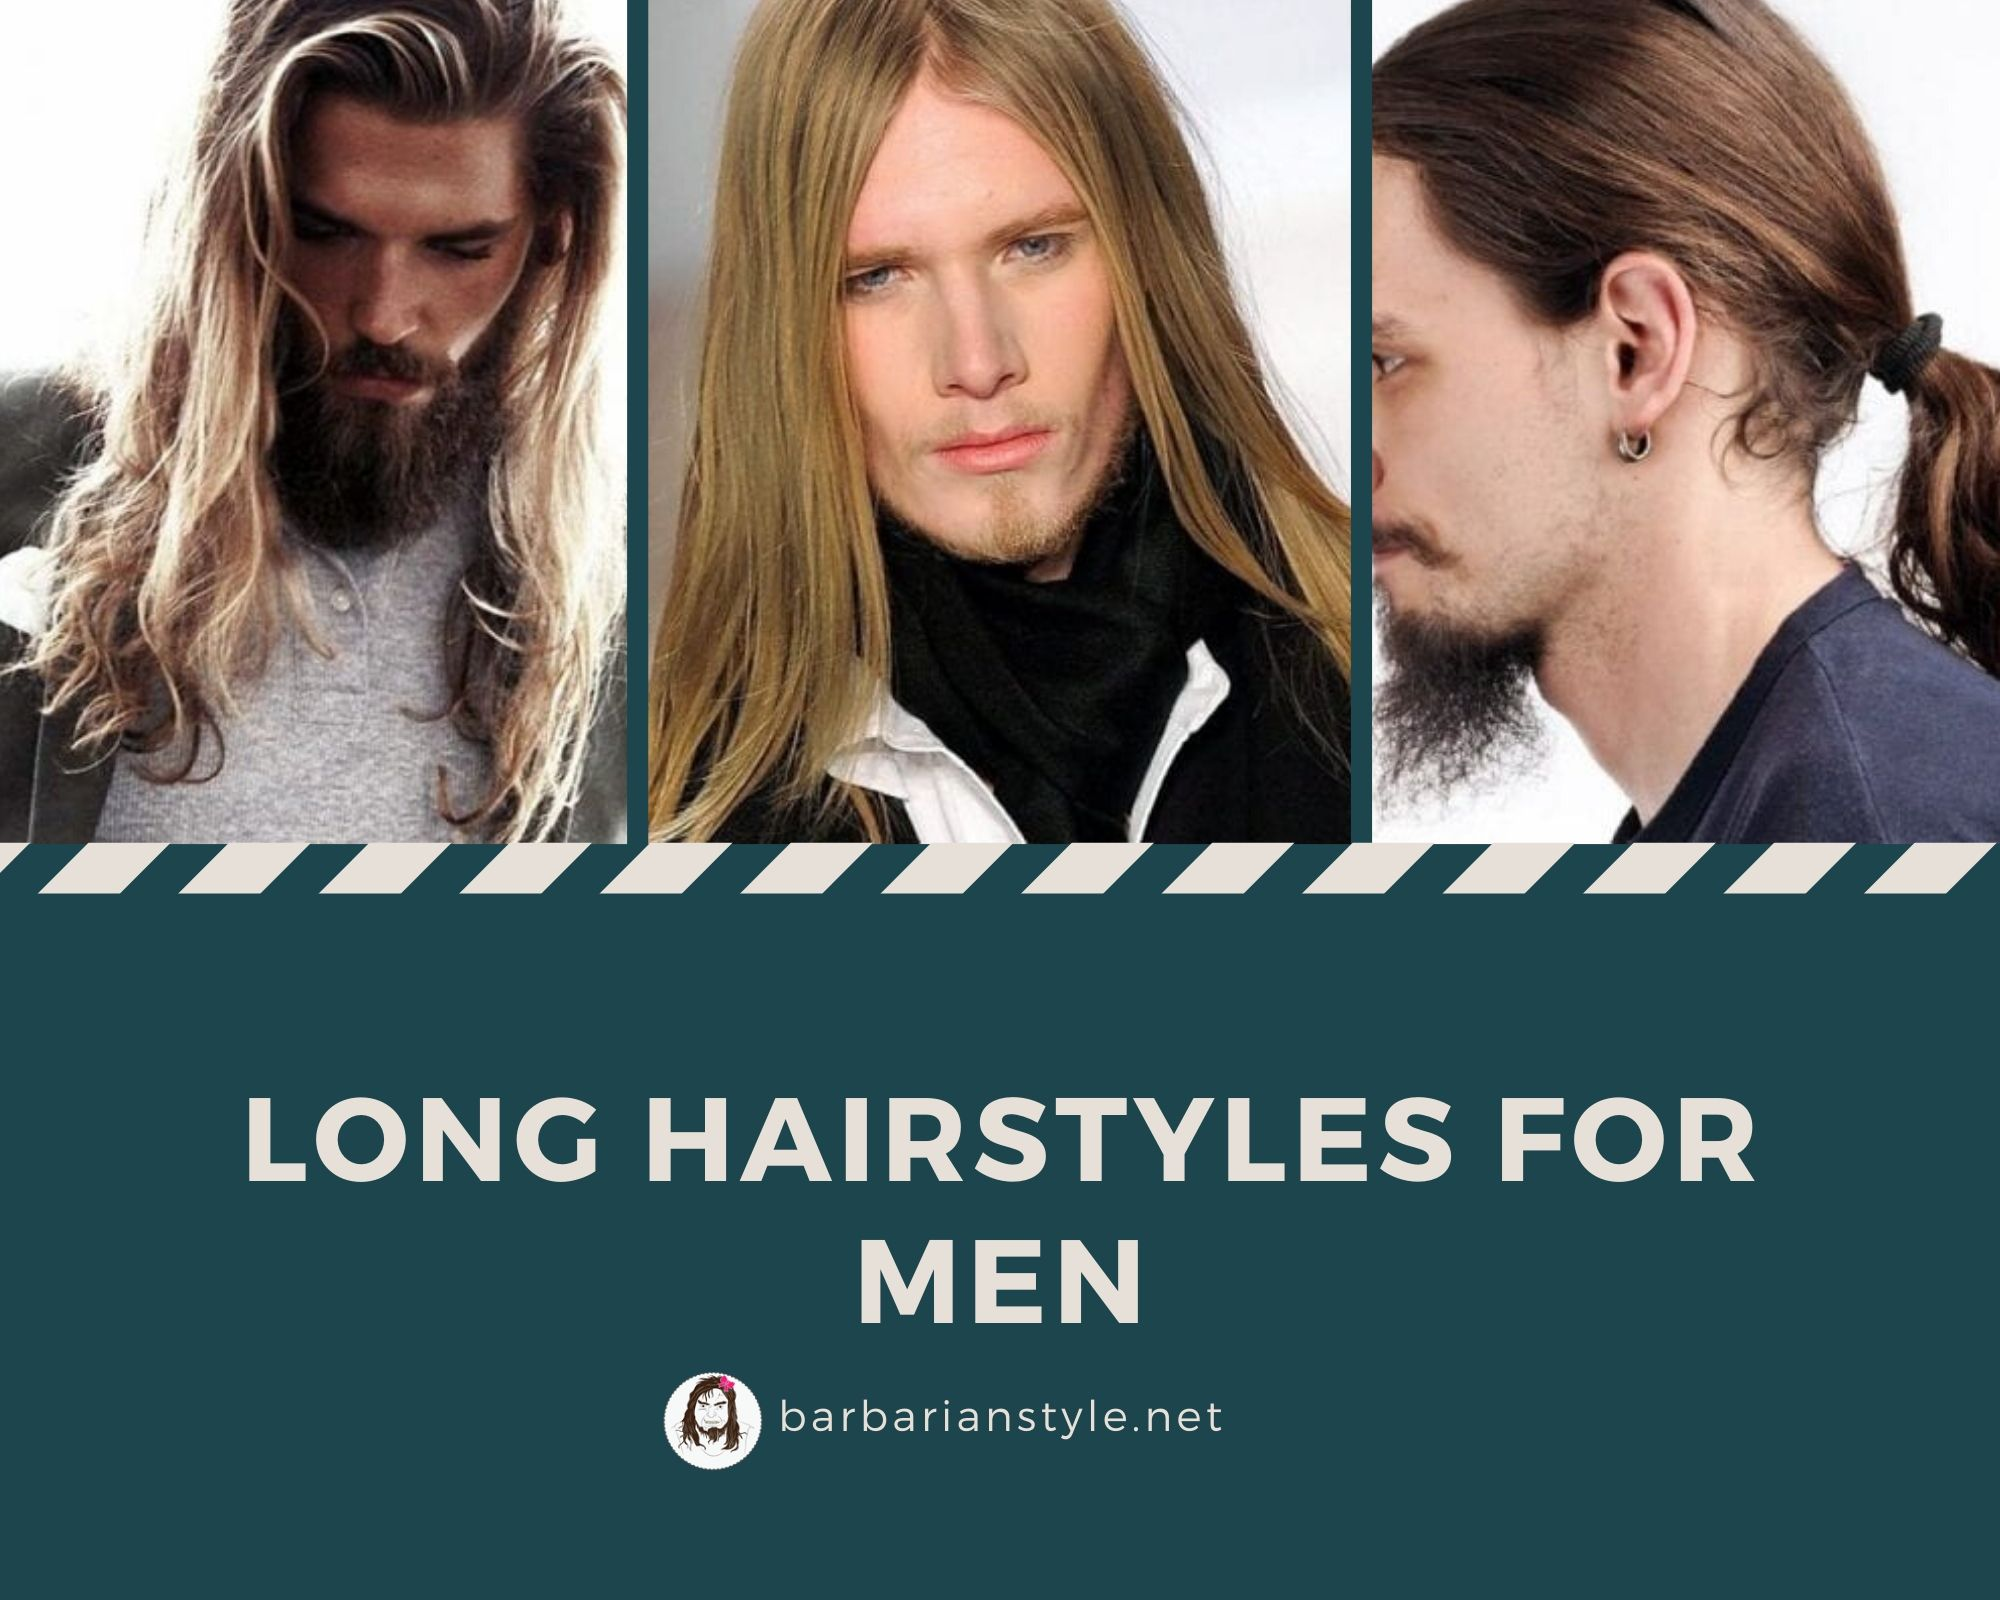 Will i look good with long hair guy